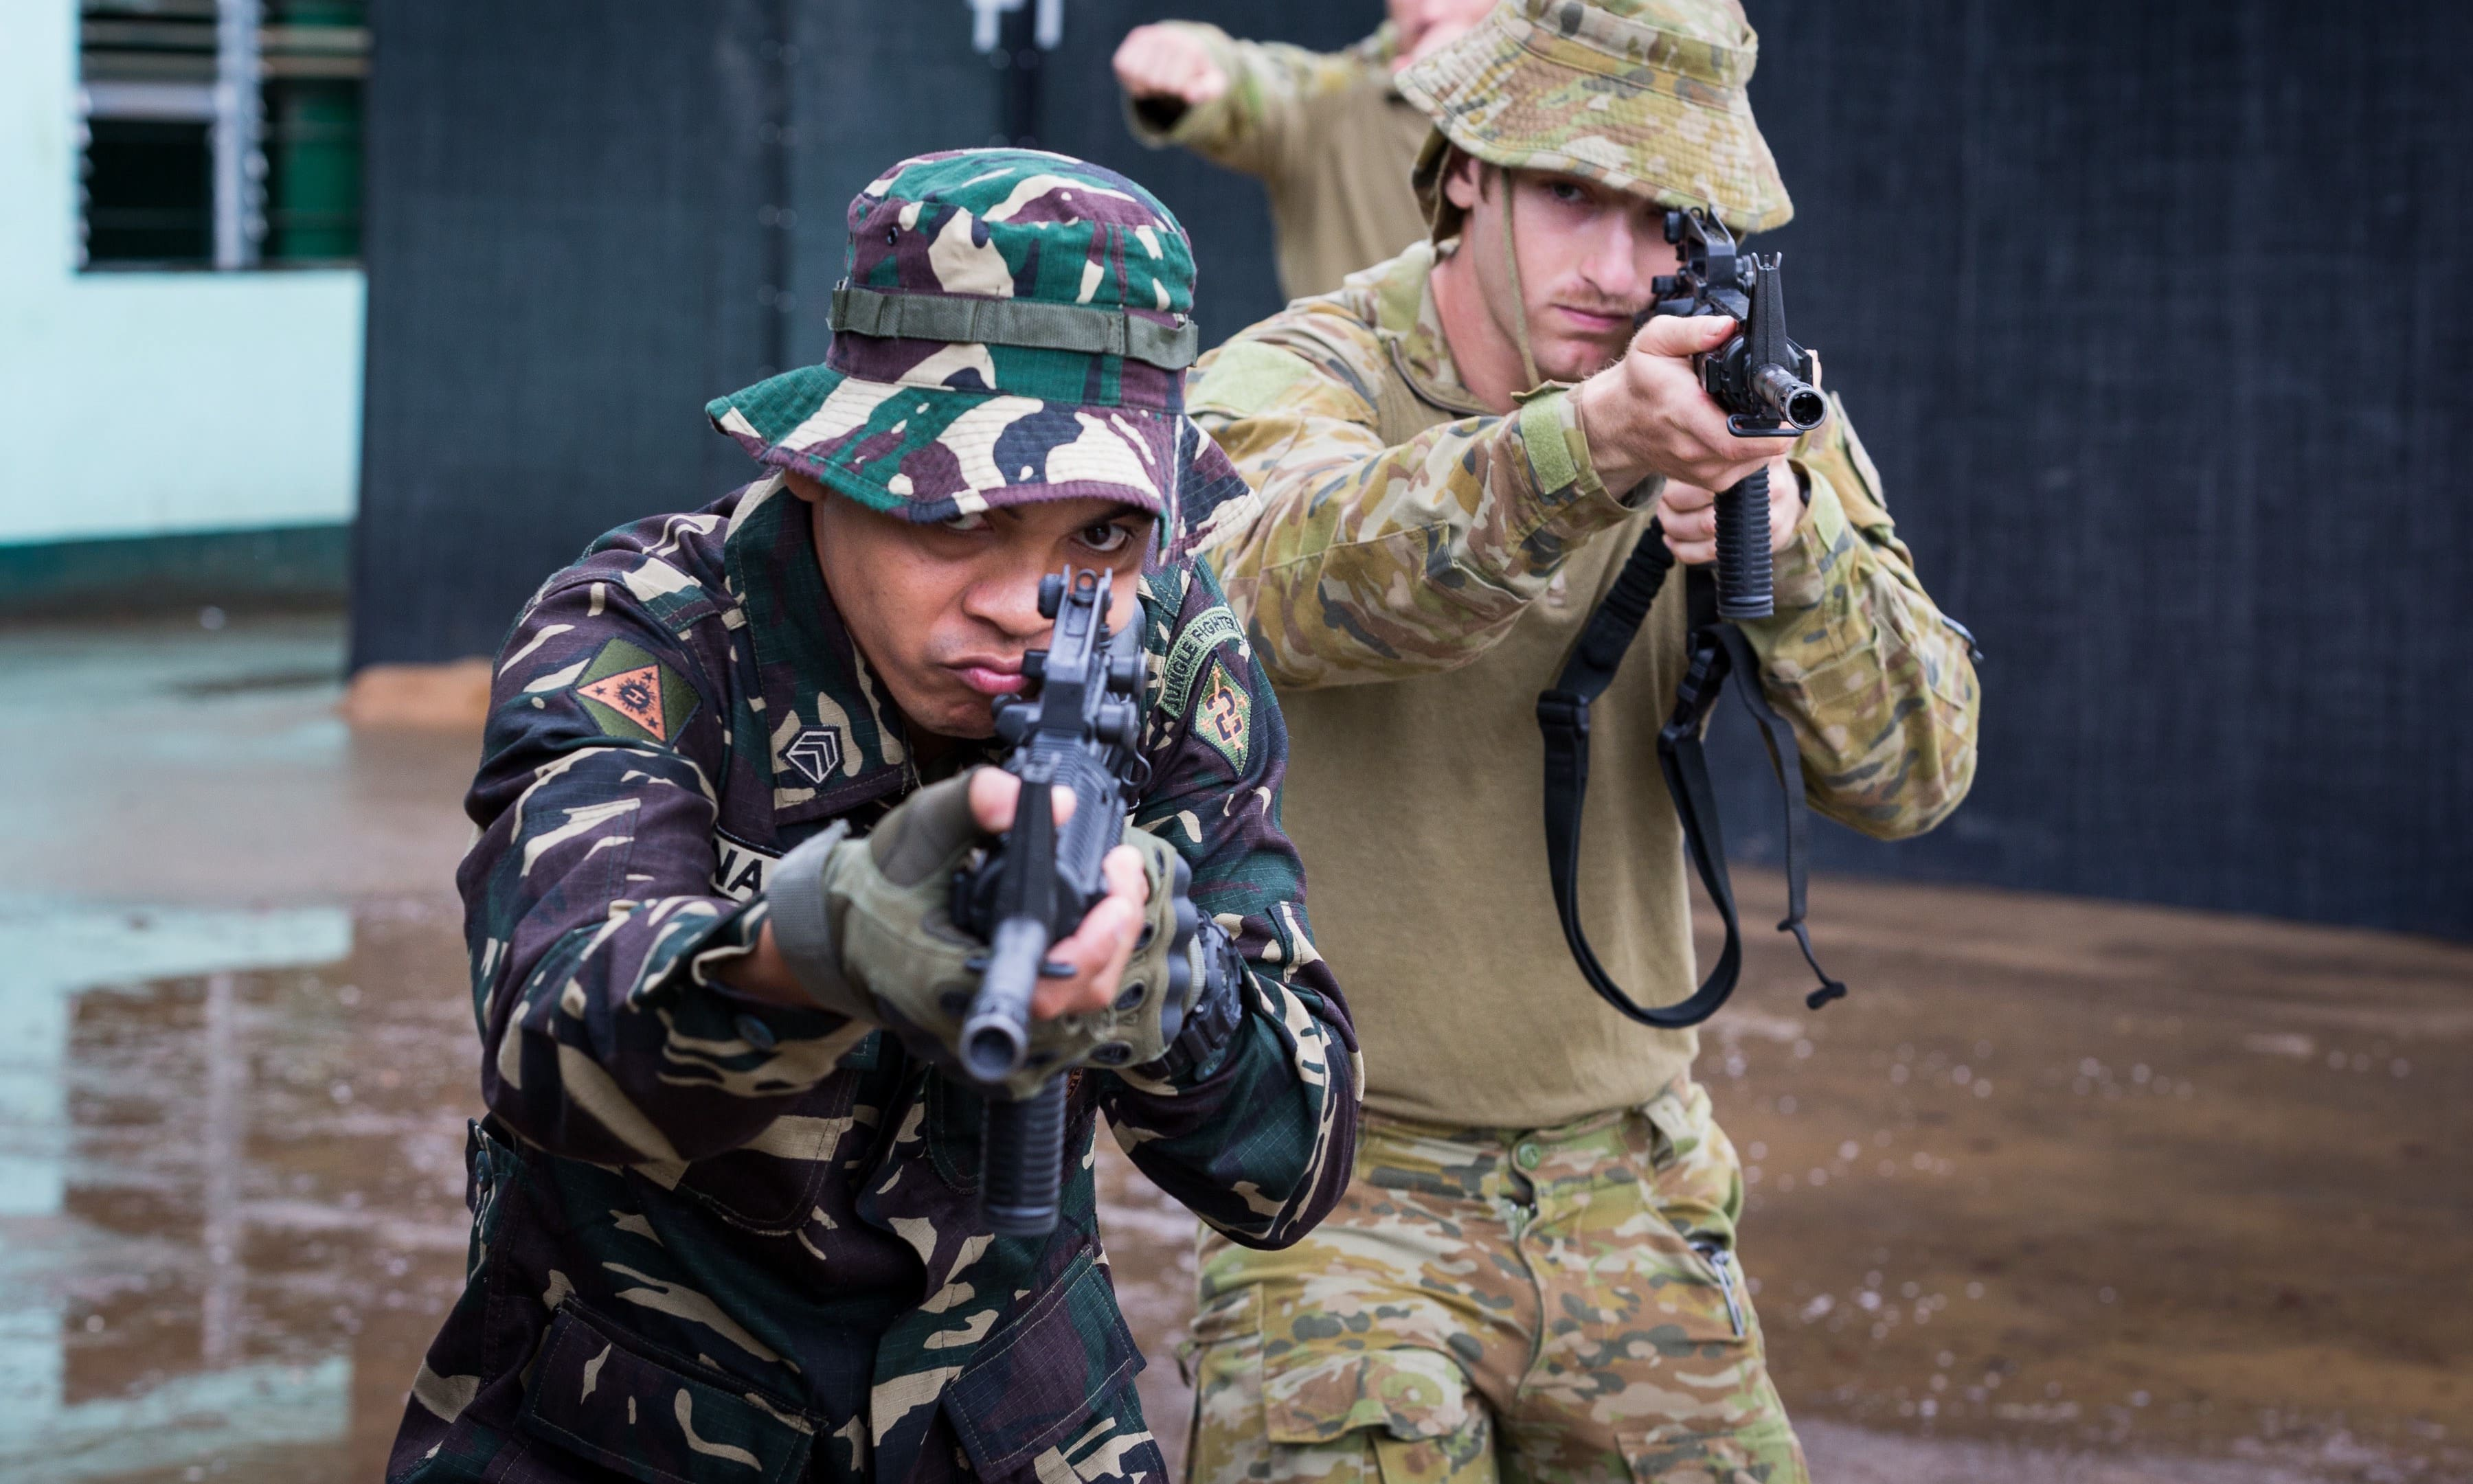 Australian and Filipino soldiers training urban close combat in November (Photo: Dept of Defence)